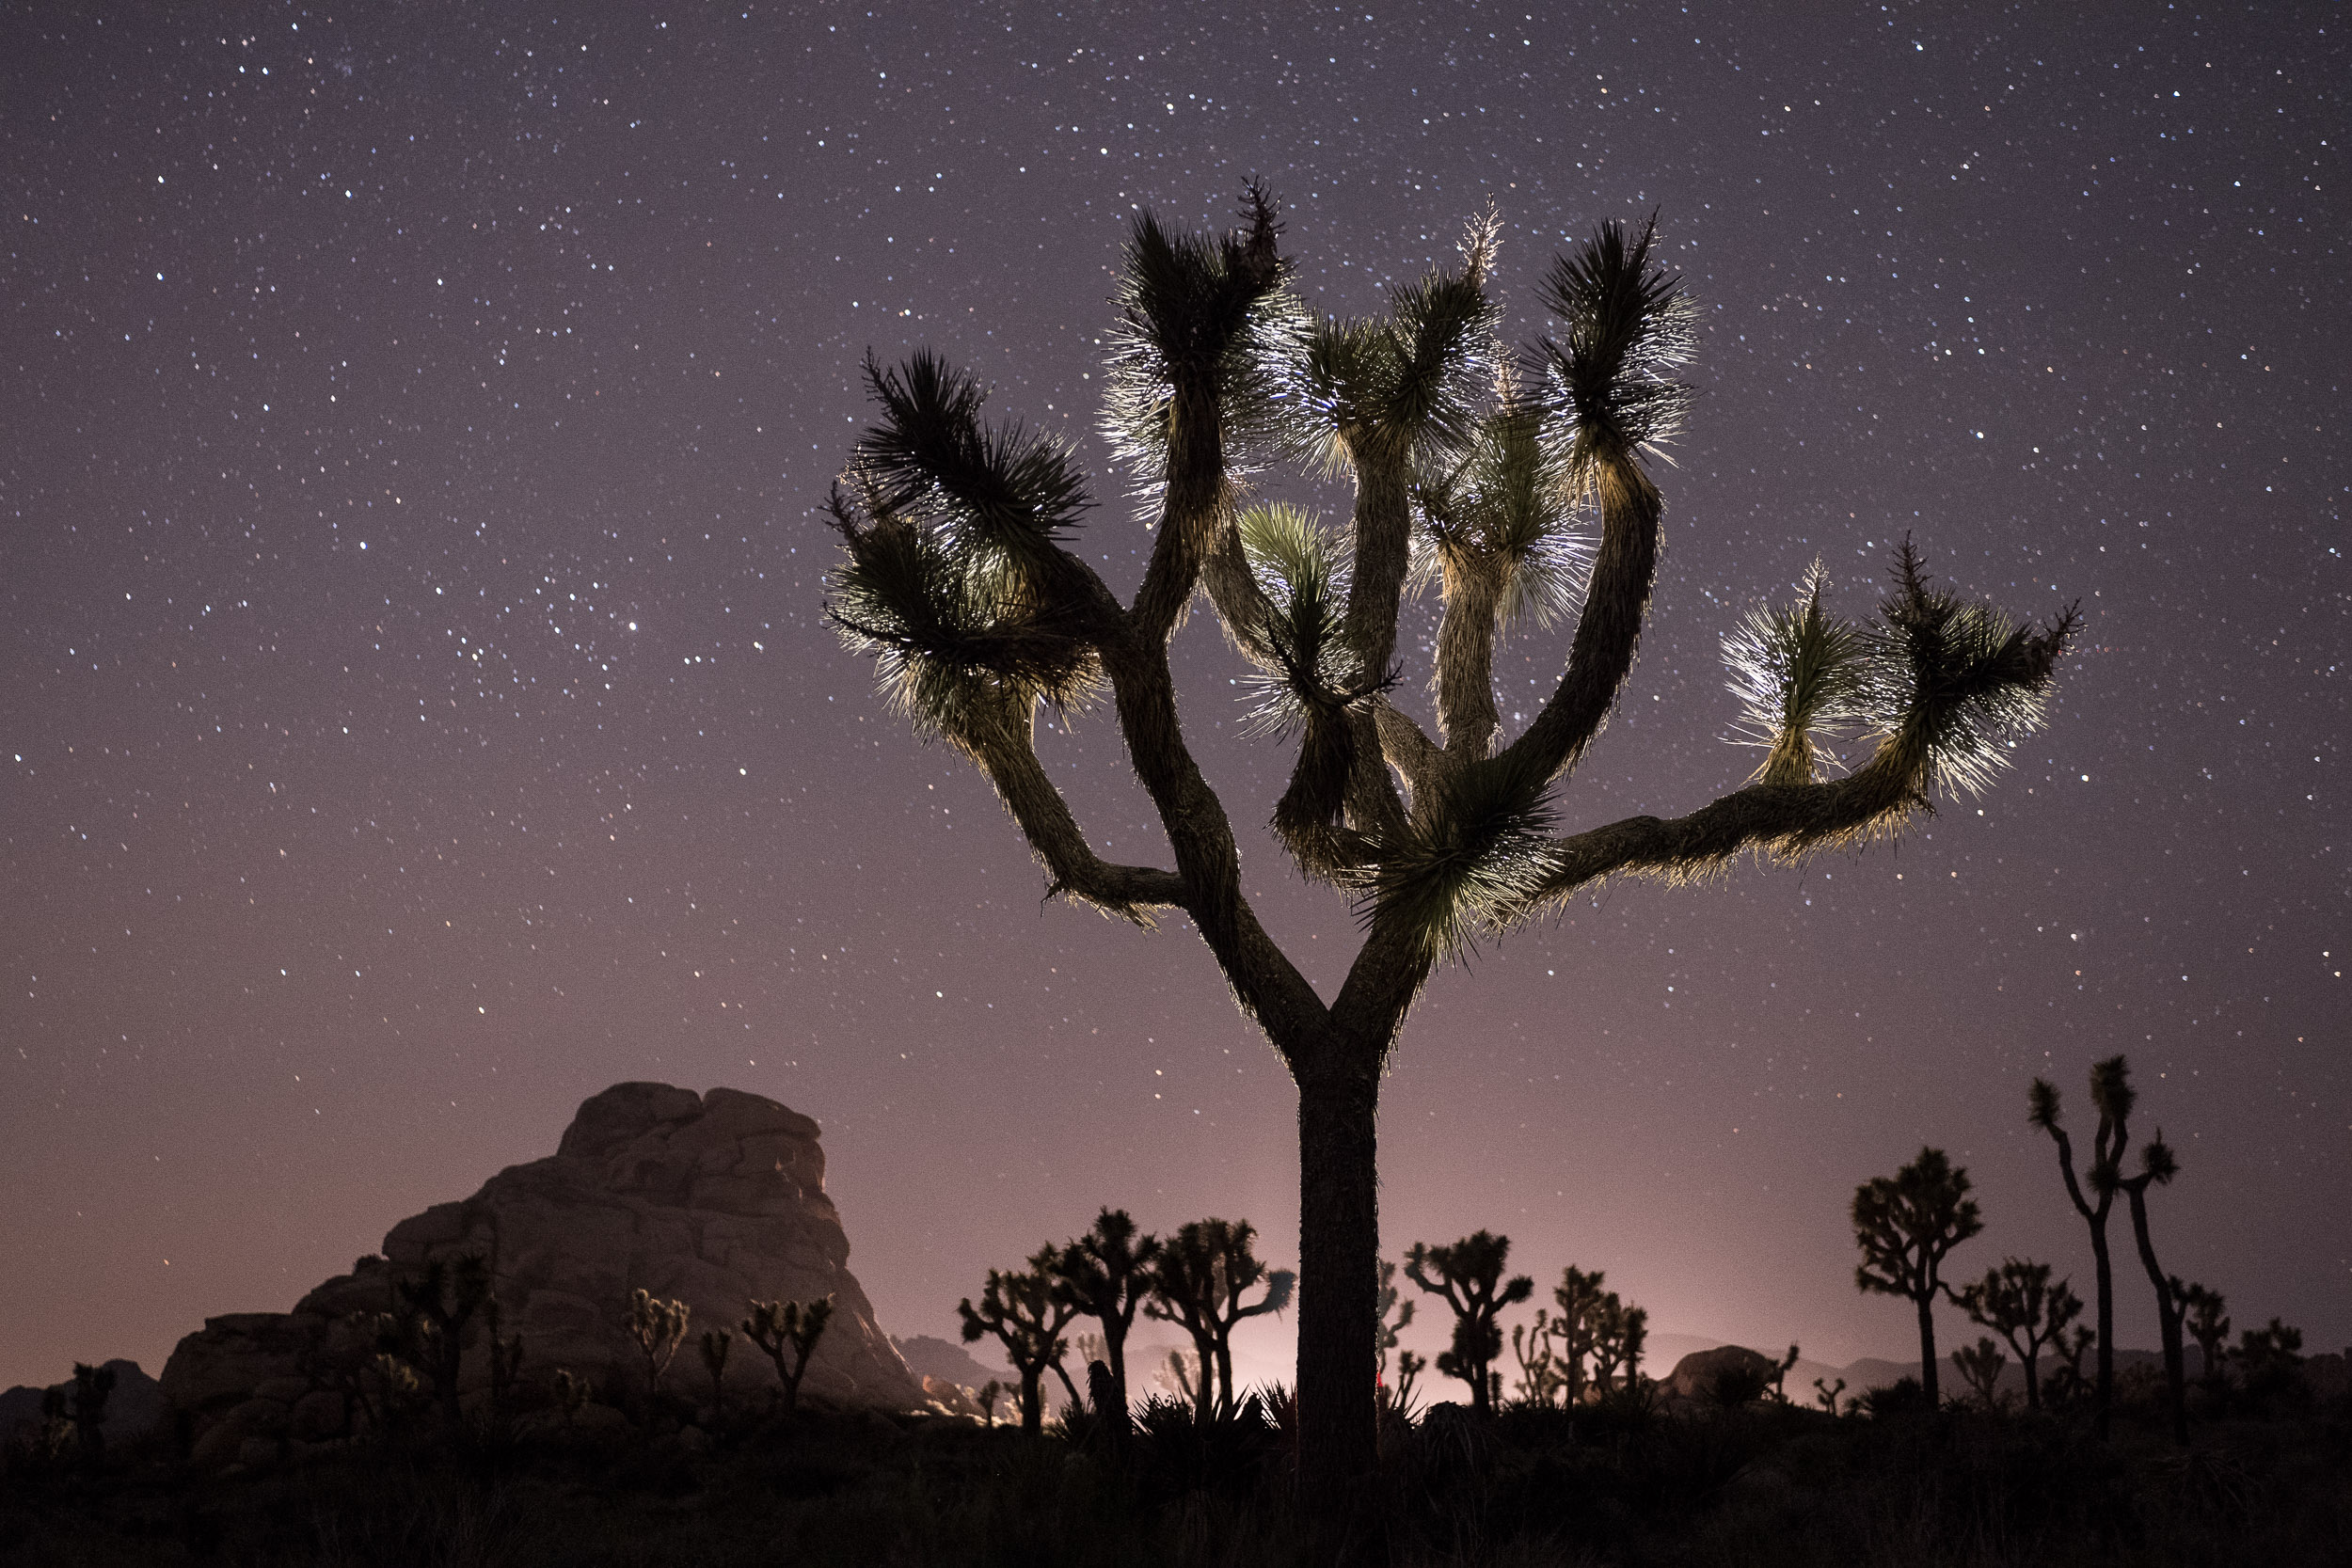 <p><strong>Joshua Tree National Park (Waitlist)</strong><br/> April 25-30, 2020</p>